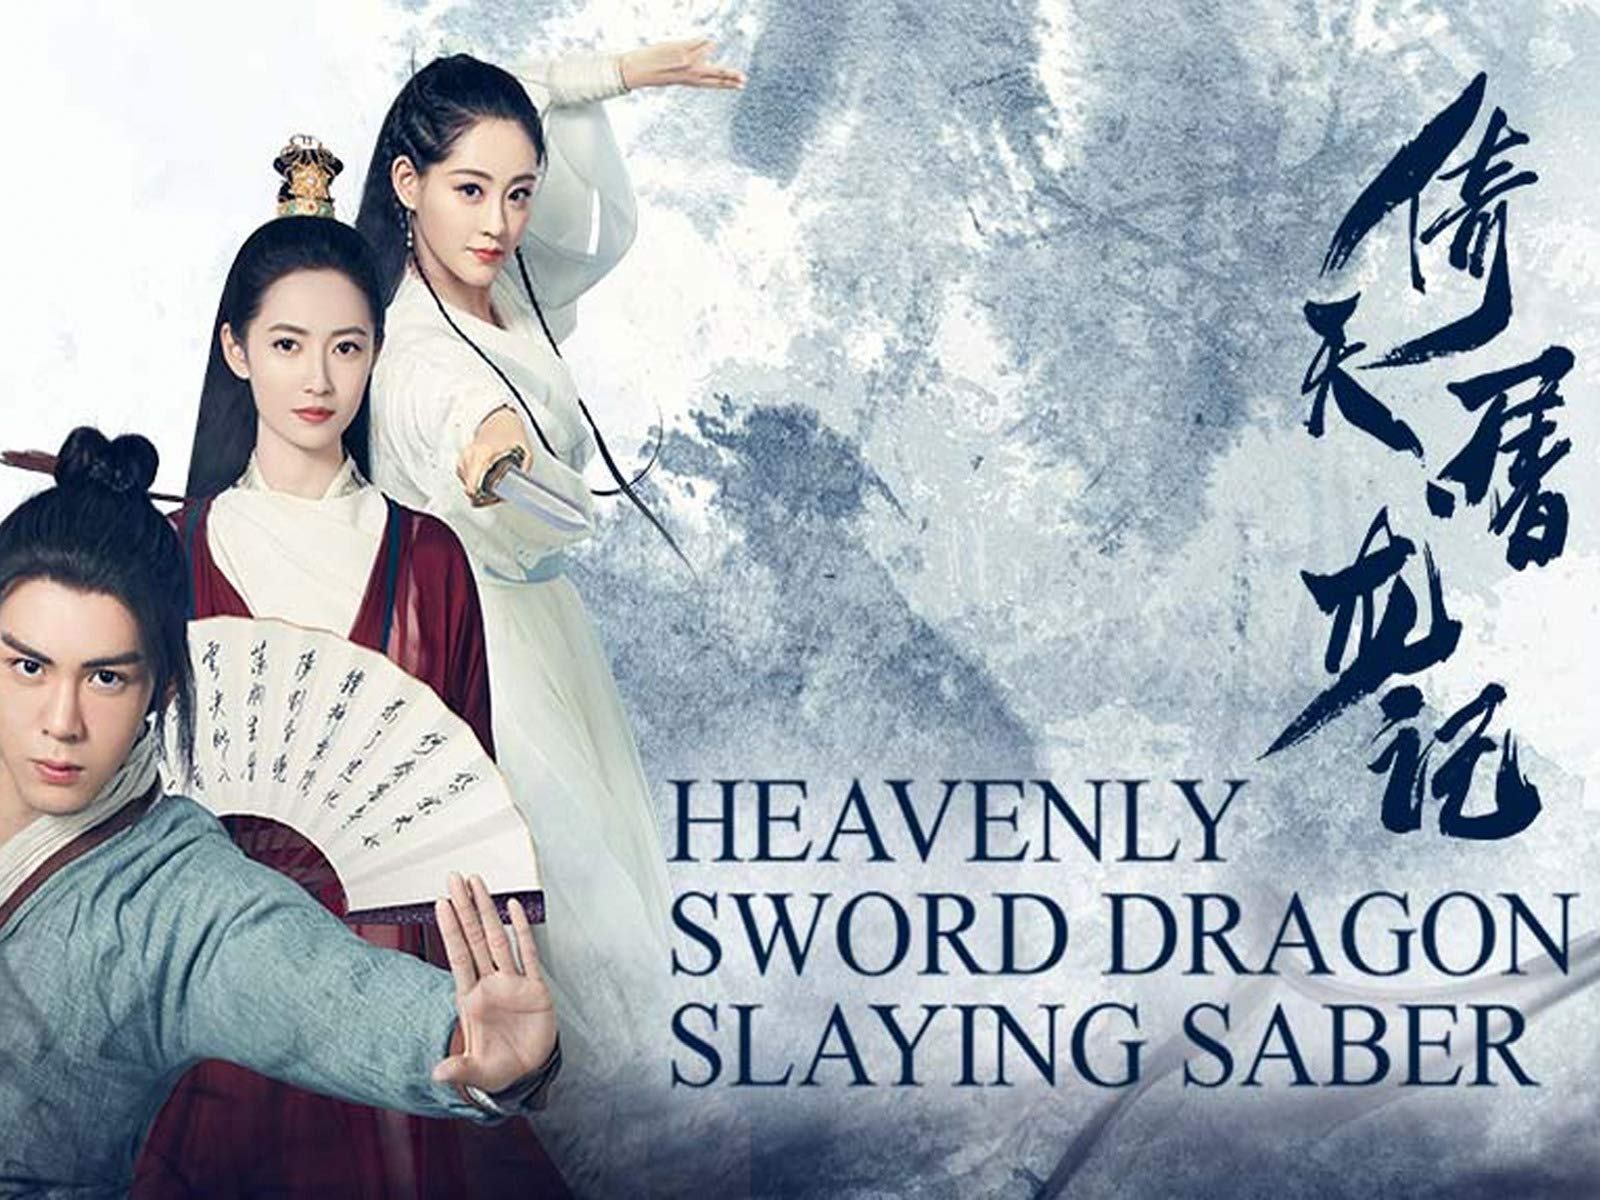 Heavenly Sword And Dragon Slaying Sabre Wallpapers Posted By